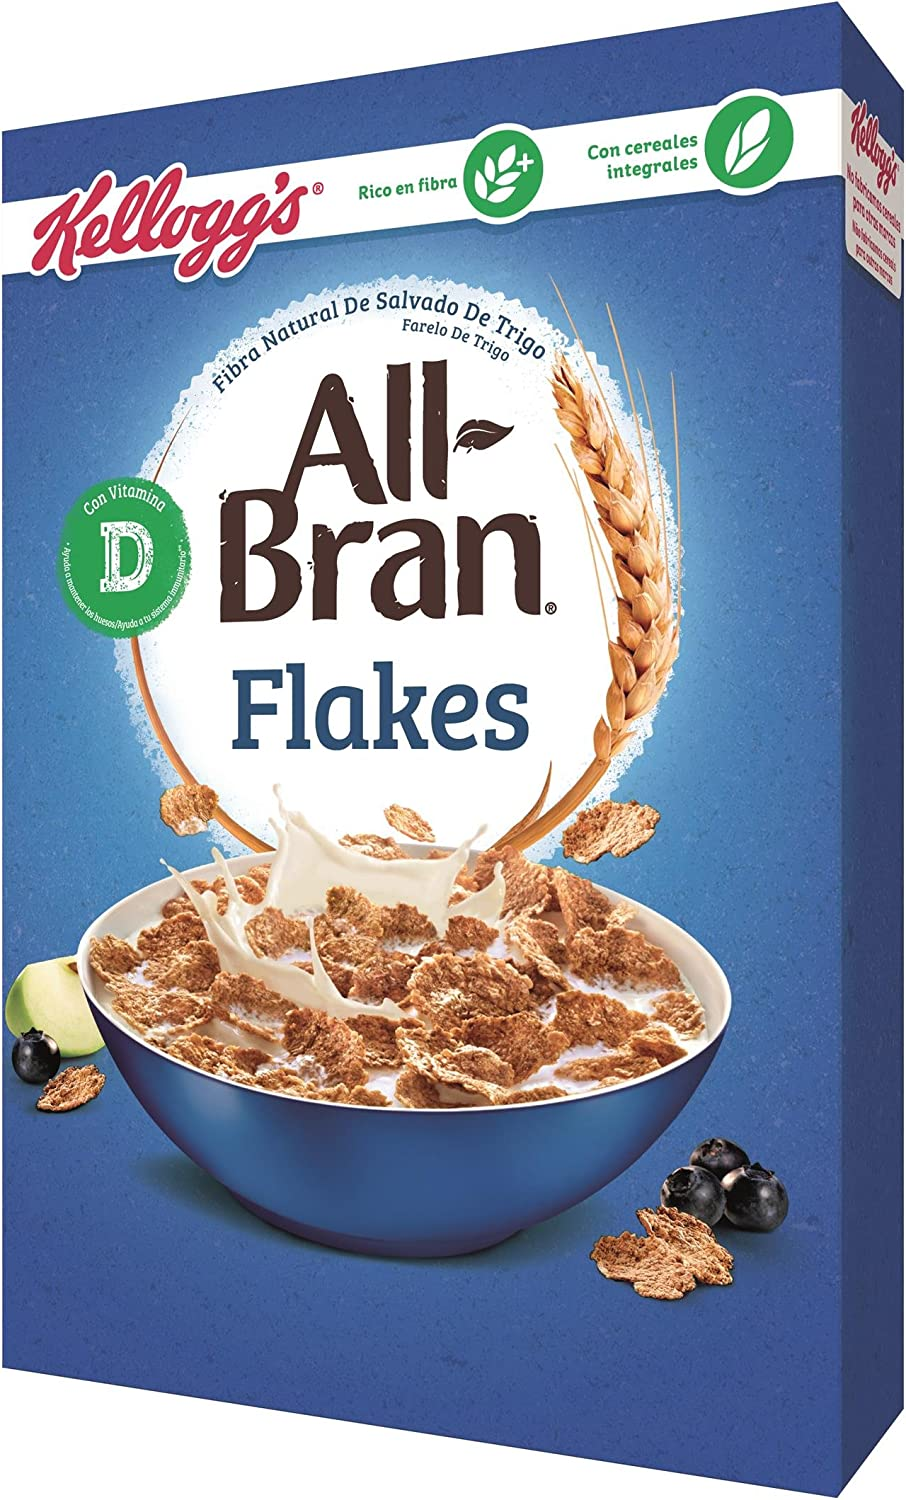 All-Bran Flakes 500G: Amazon.es: Alimentación y bebidas